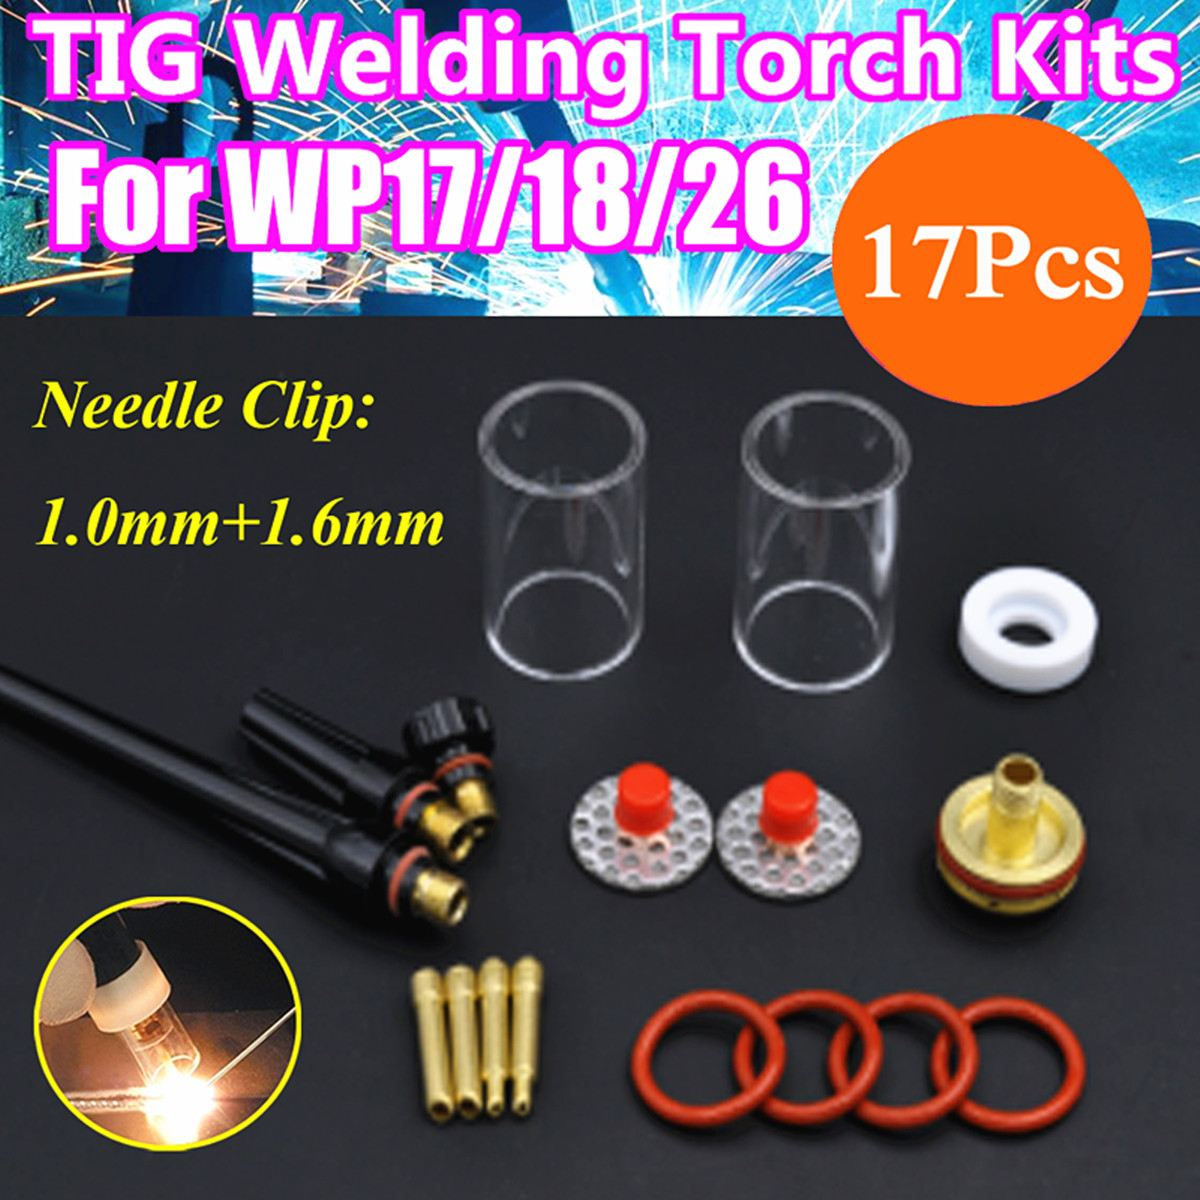 17Pcs/Set TIG Welding Torch Stubby Collet Gas Lens Nozzle Glass Pryex Cup Kit with Heat-Resistant O-rings For WP-17/18/26 Series wp 17f sr 17f tig welding torch complete 17feet 5meter soldering iron flexible